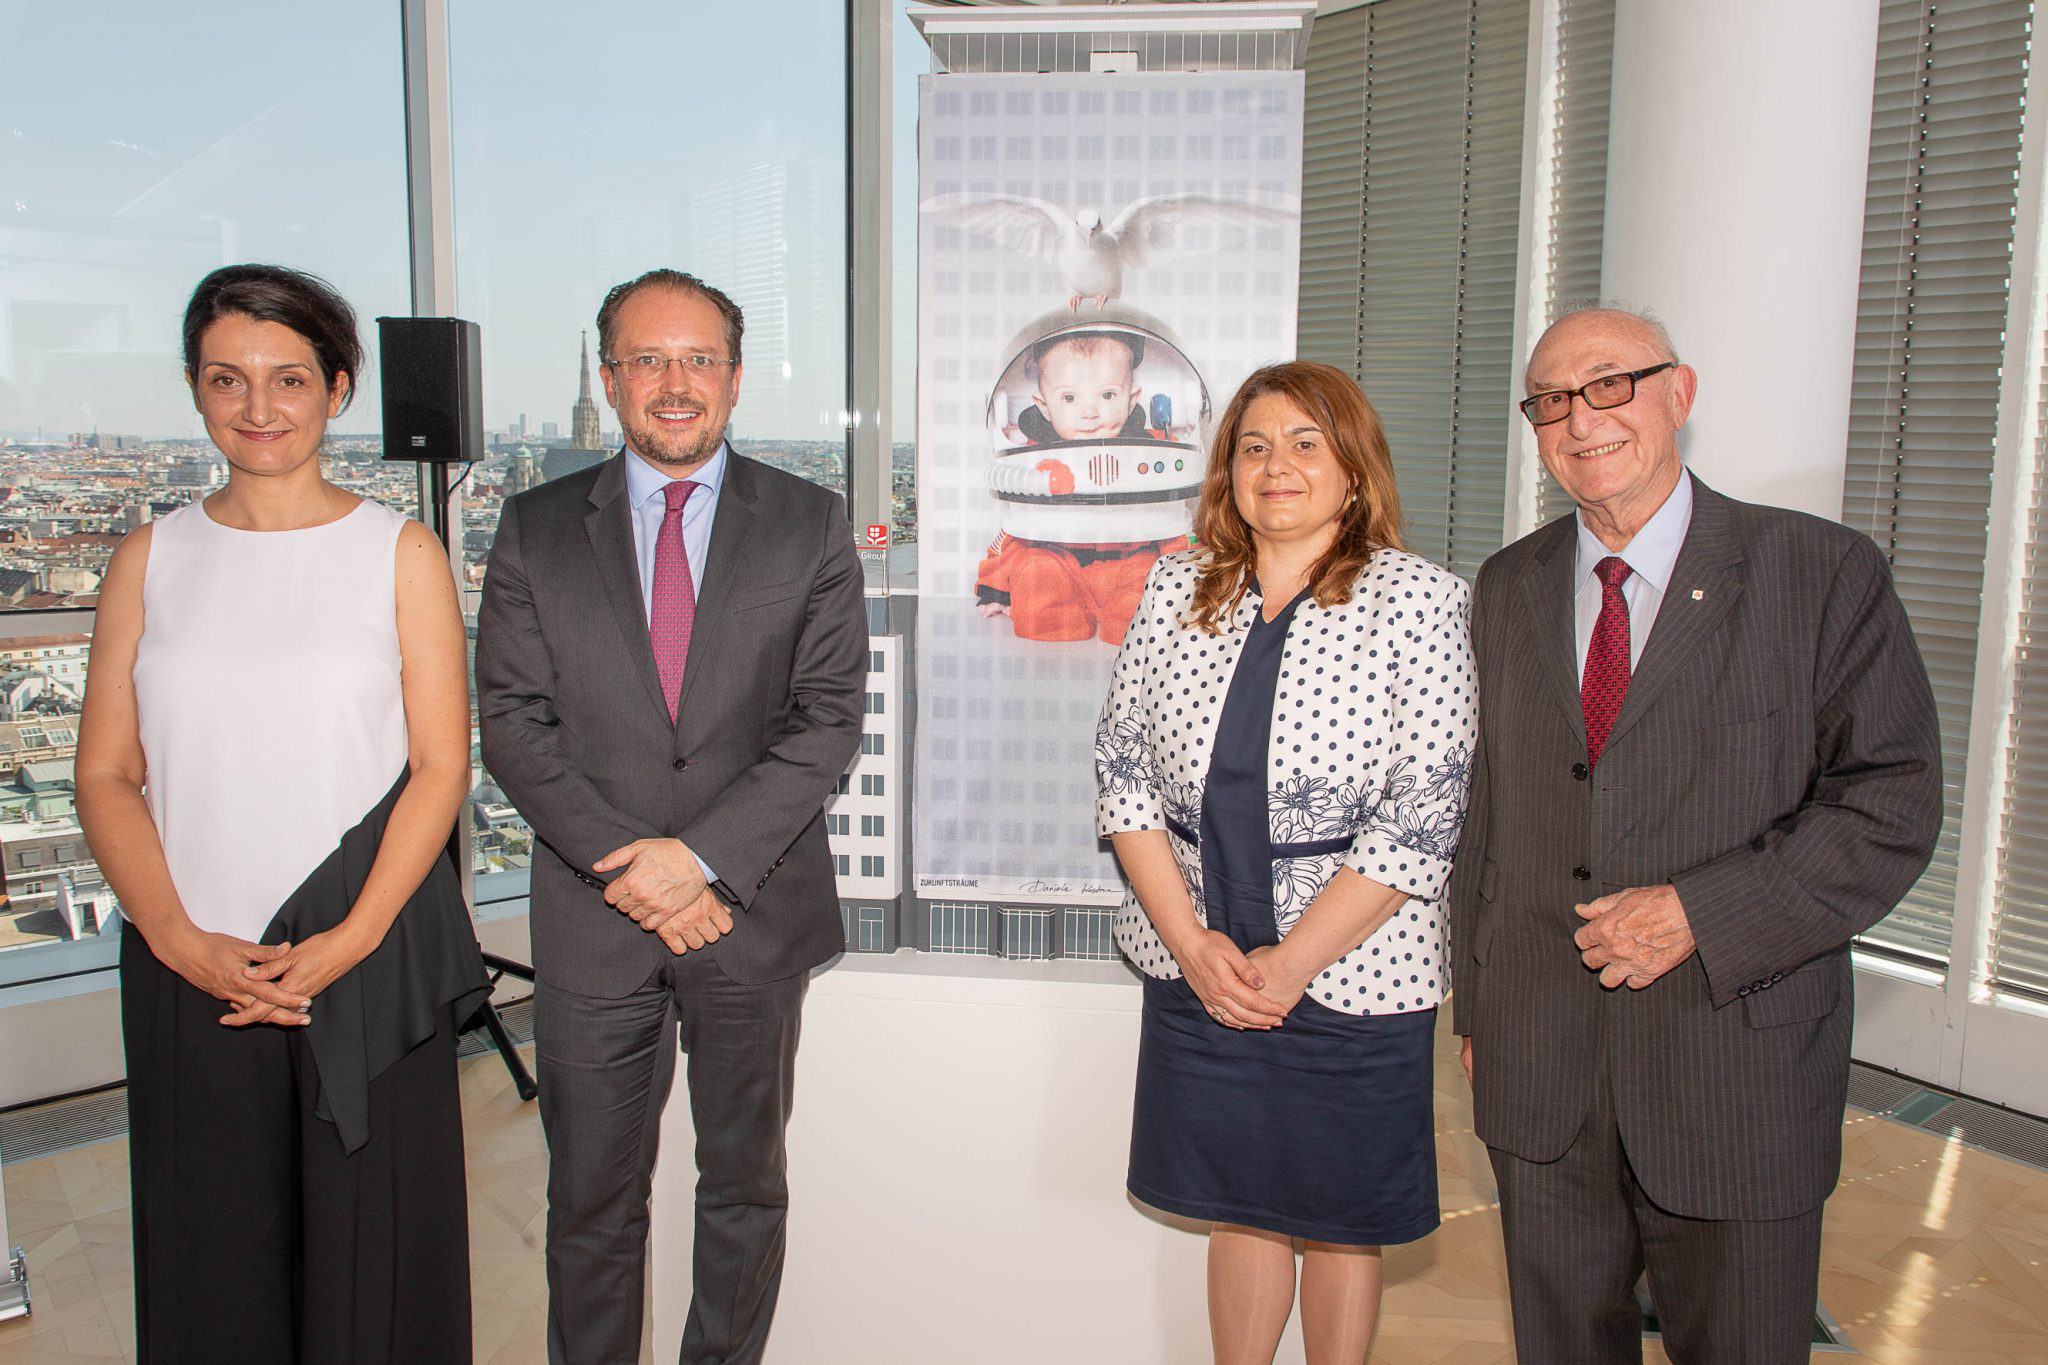 On the picture from left artist Daniela Kostova, Alexander Schallenberg (Austrian Federal Minister for Europe, Integration and Foreign Affairs, and for the EU, Arts, Culture and Media), Amelia Gesheva (Deputy Culture Minister of the Republic of Bulgaria) and Günter Geyer (Managing Board Chairman of Wiener Städtische Versicherungsverein). © Wiener Städtische Versicherungsverein / Richard Tanzer